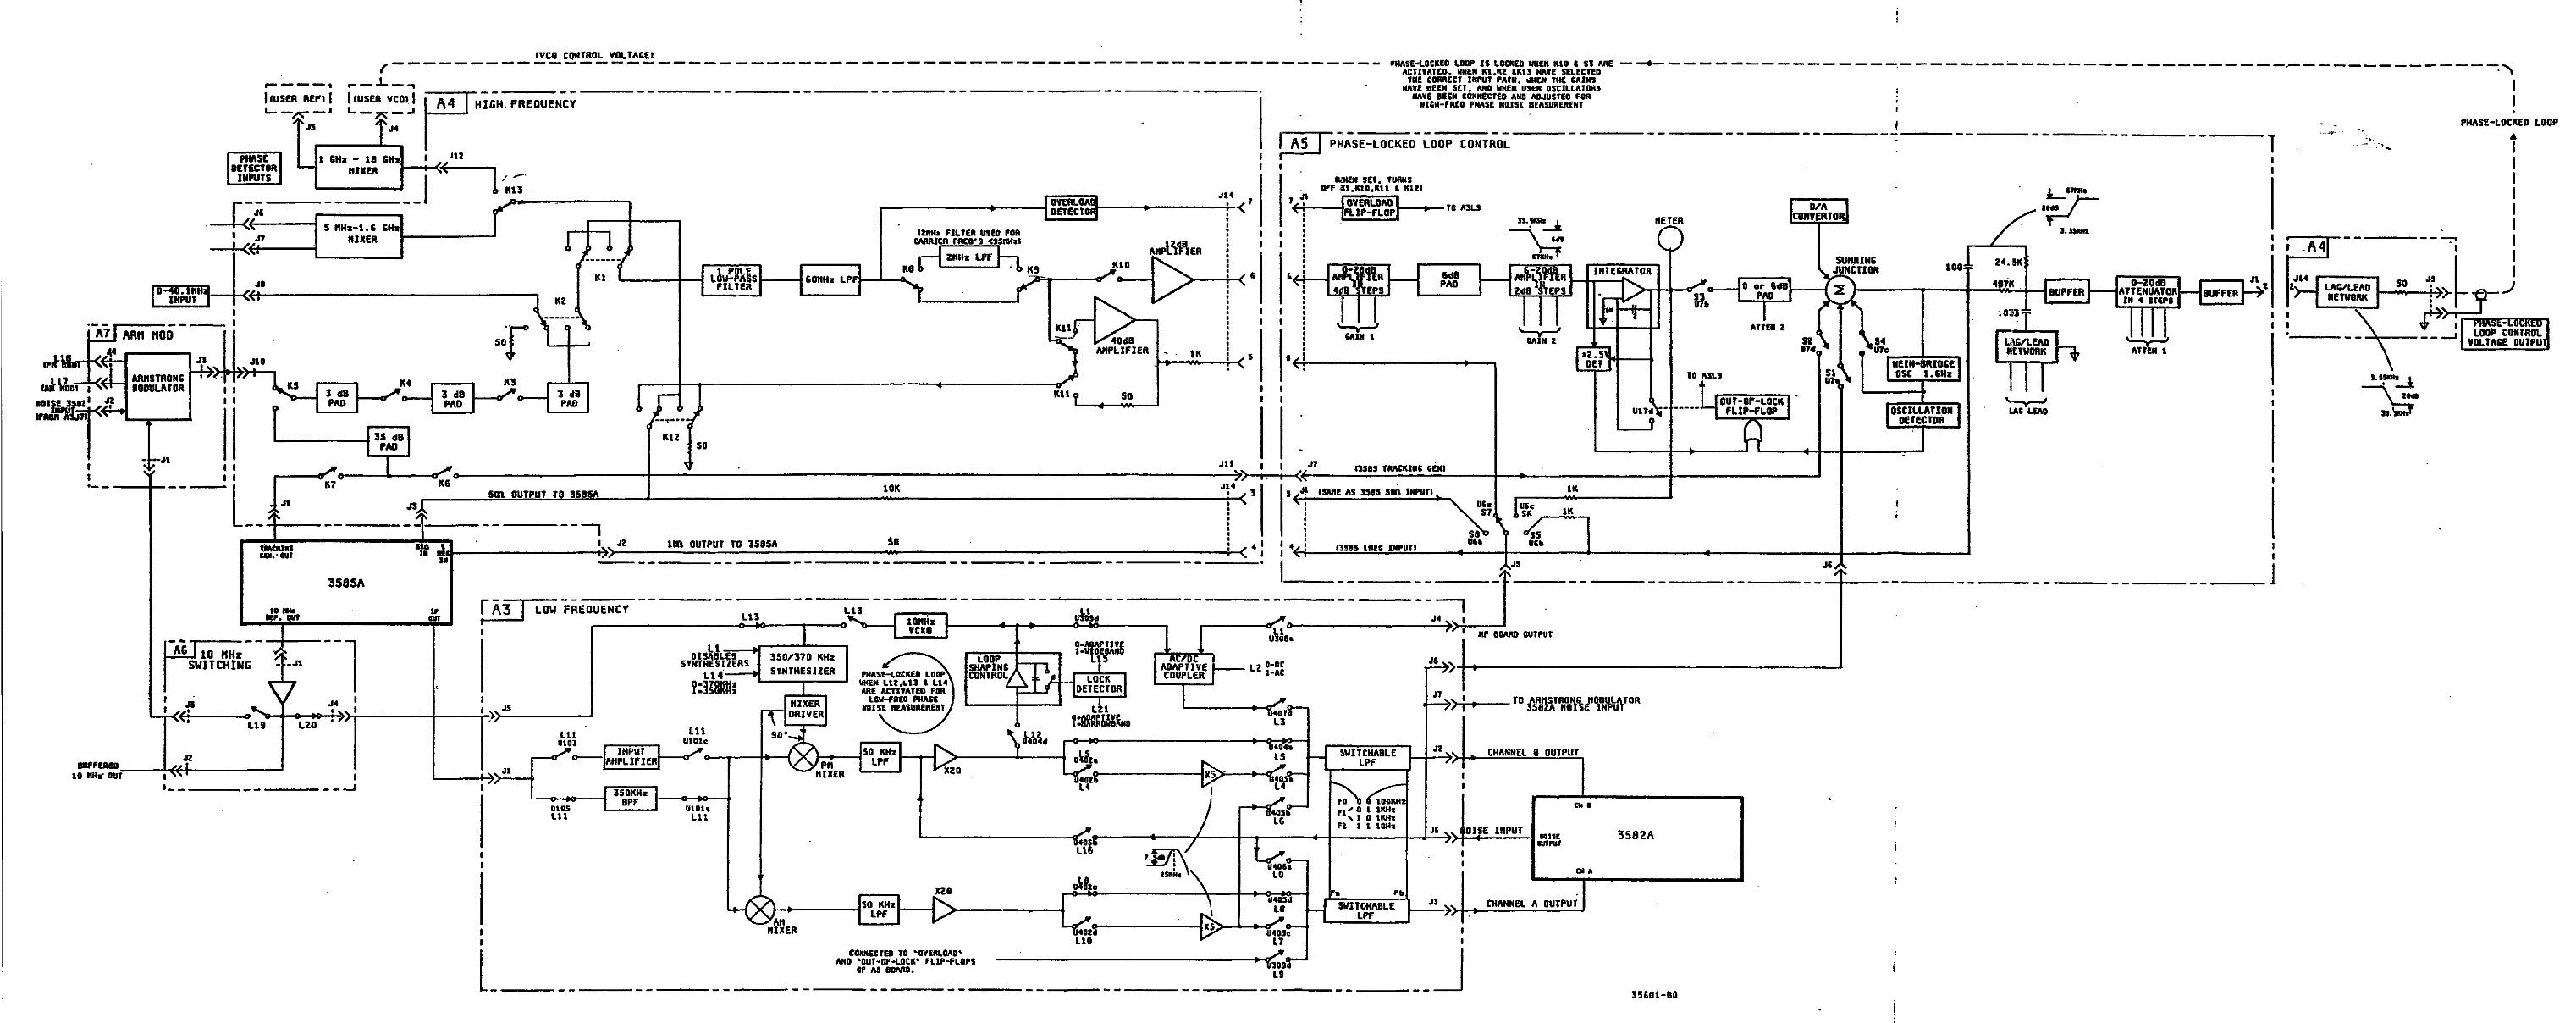 35601a block diagram